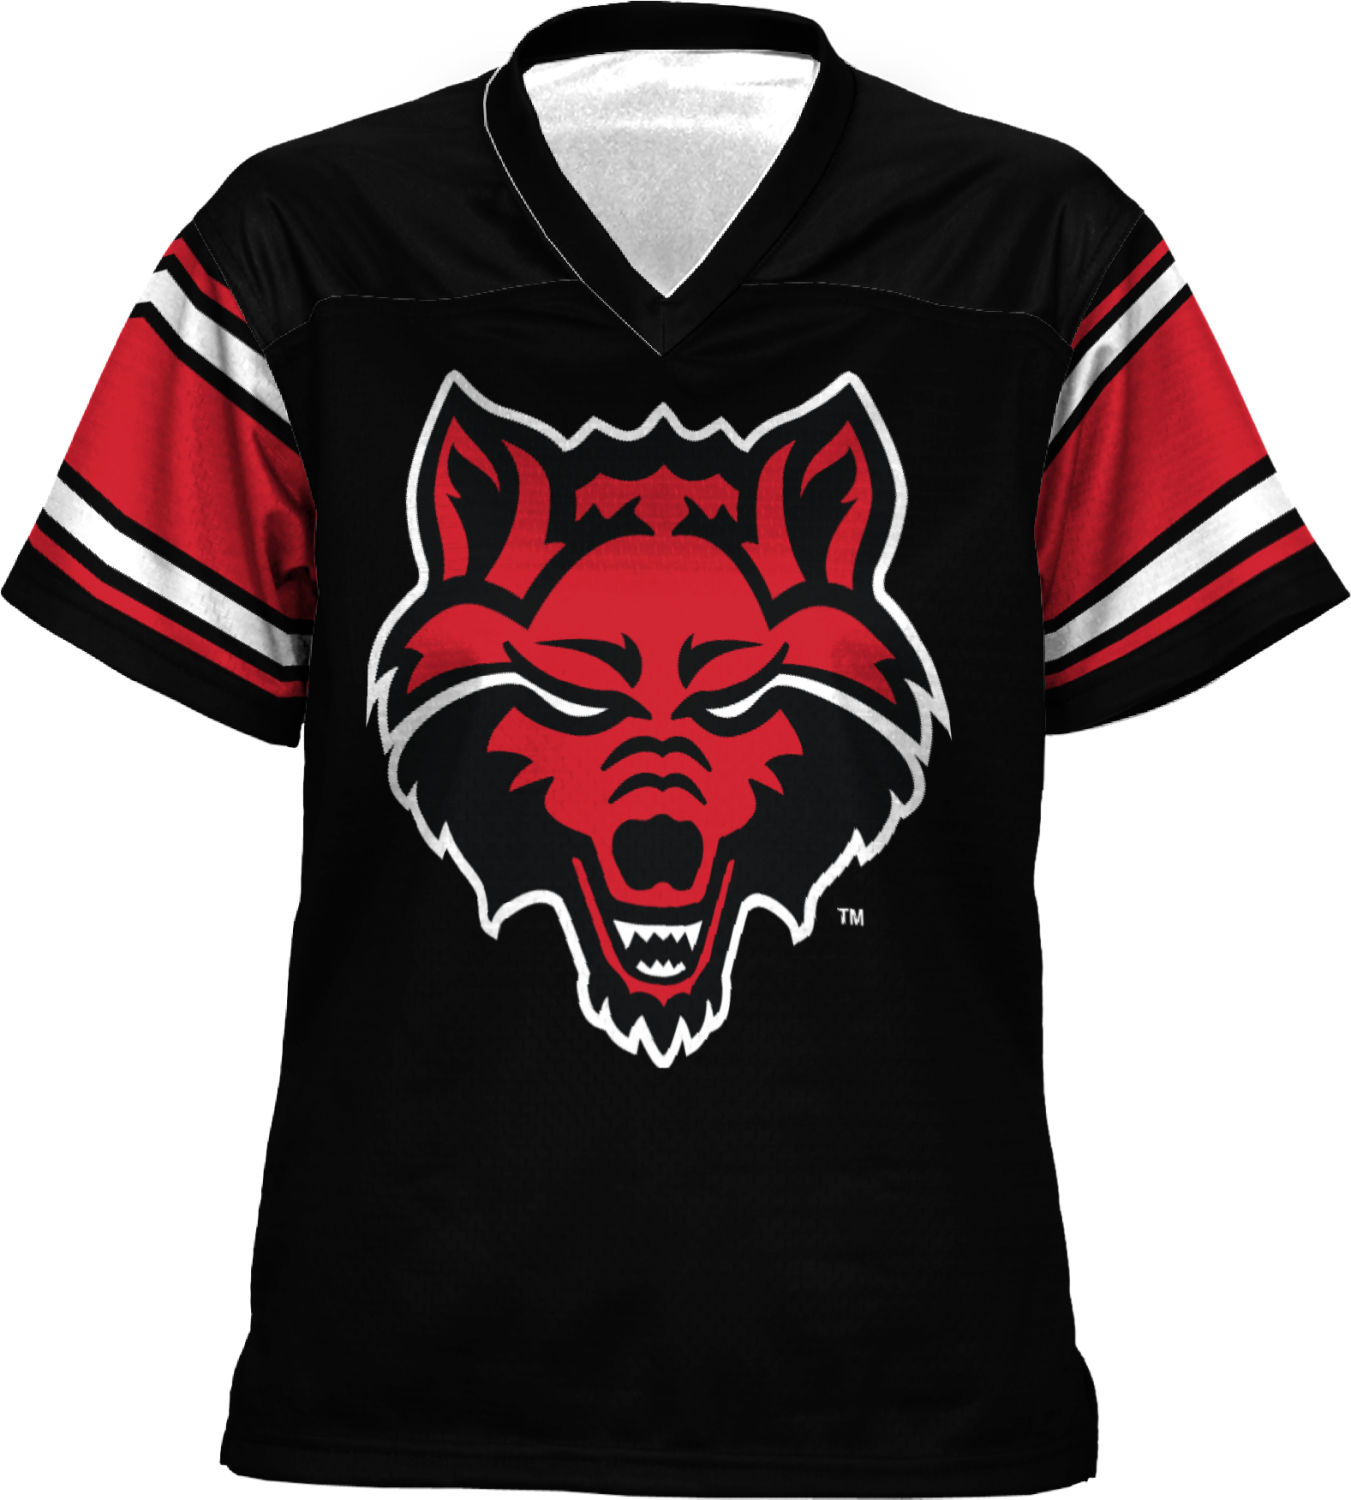 SDSU ProSphere Women/'s San Diego State University Digital Football Fan Jersey